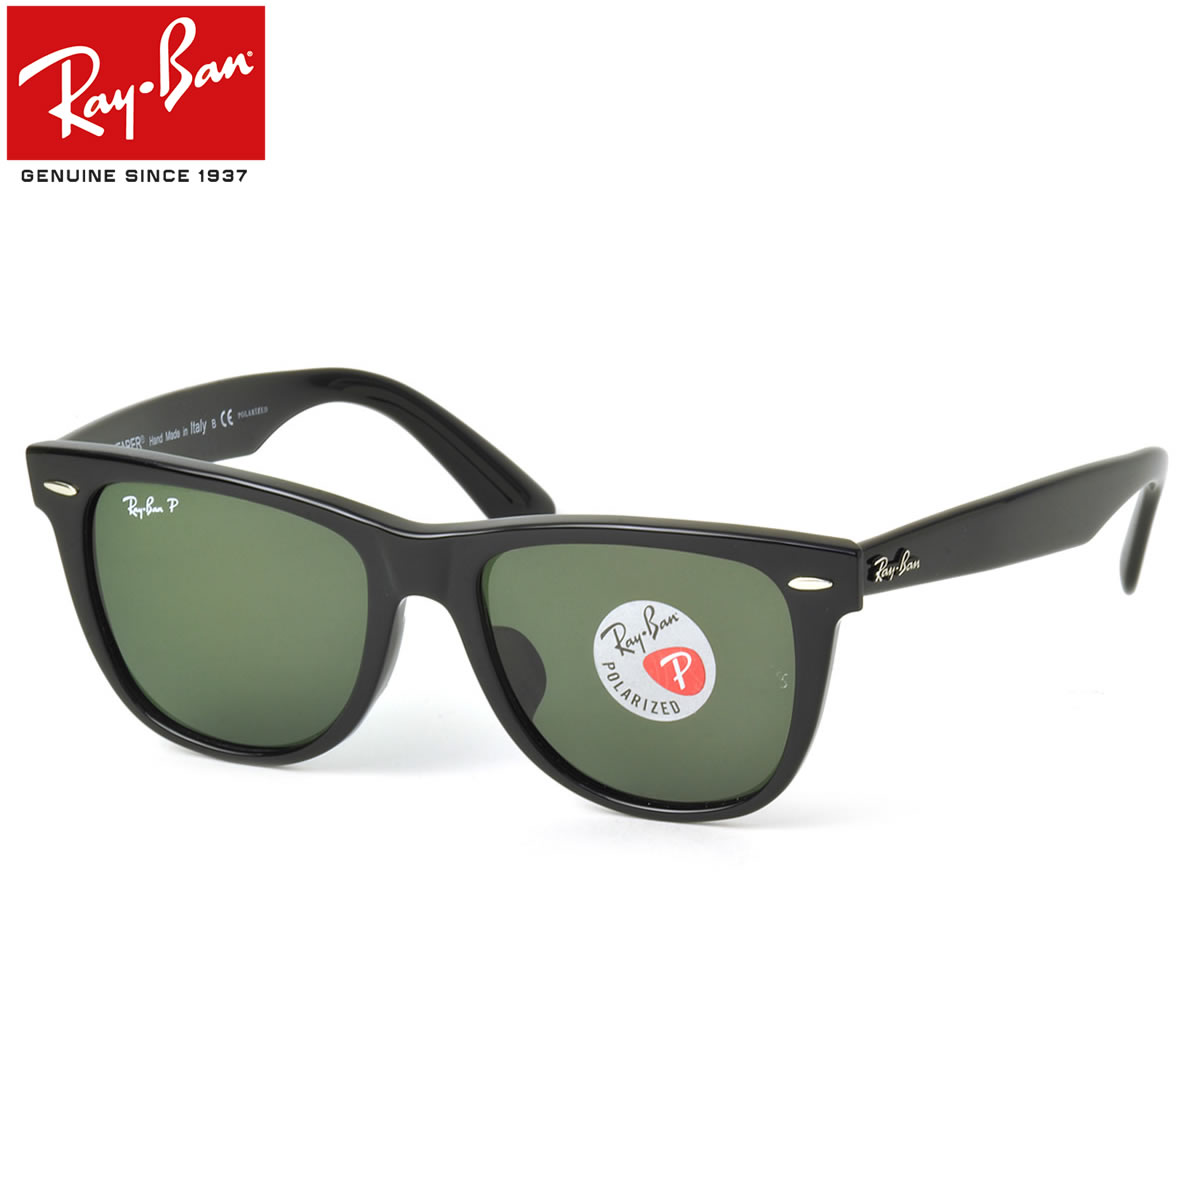 eb81364391 Ray-Ban Sunglasses RB2140F 901 58 54size WAYFARER FULL FIT (for Asian)  GENUINE NEW rayban ray ban